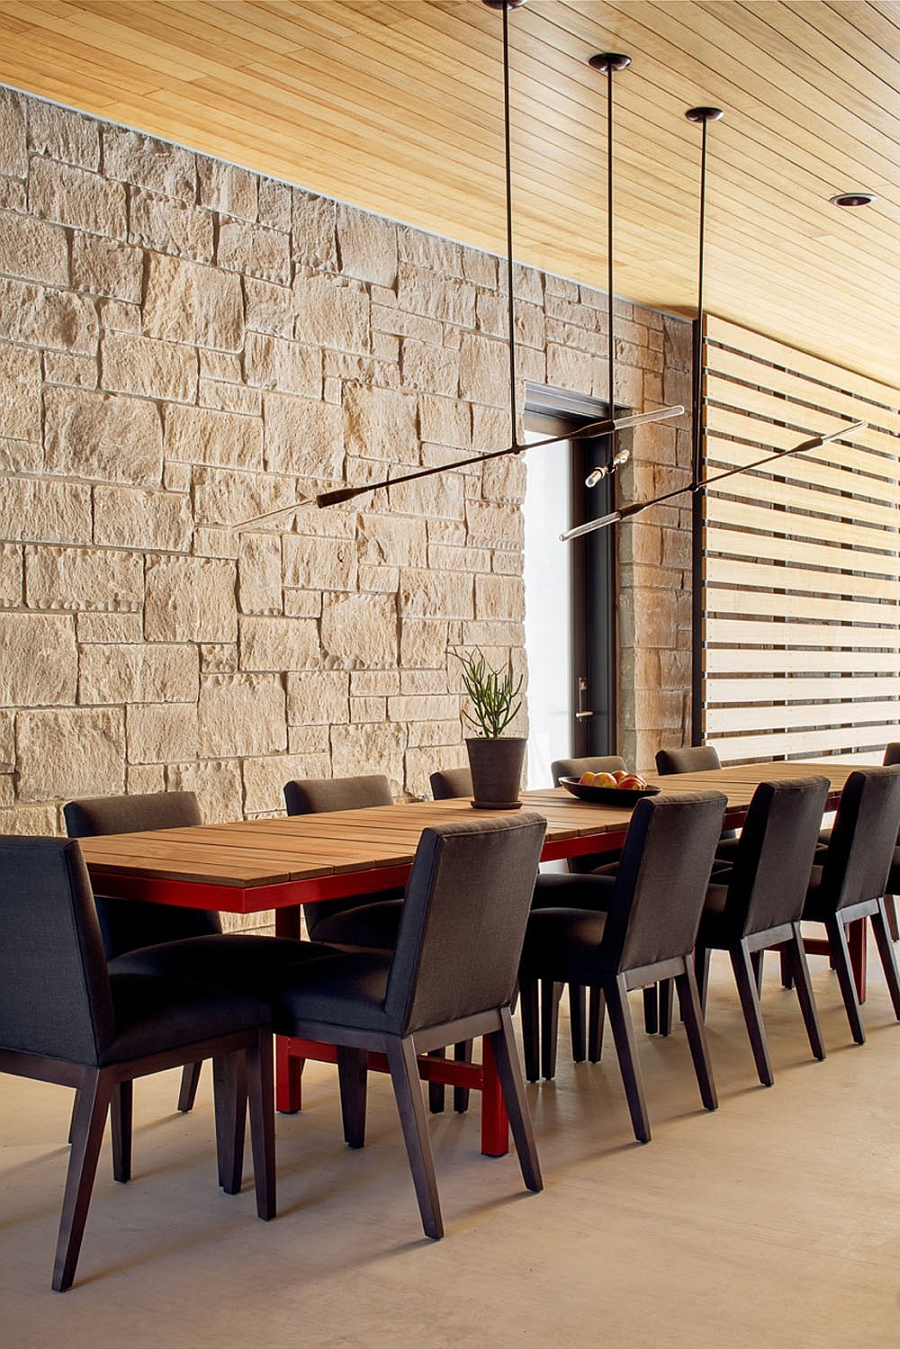 Spacious dining area with ample natural ventilation and lovely pendant lightin